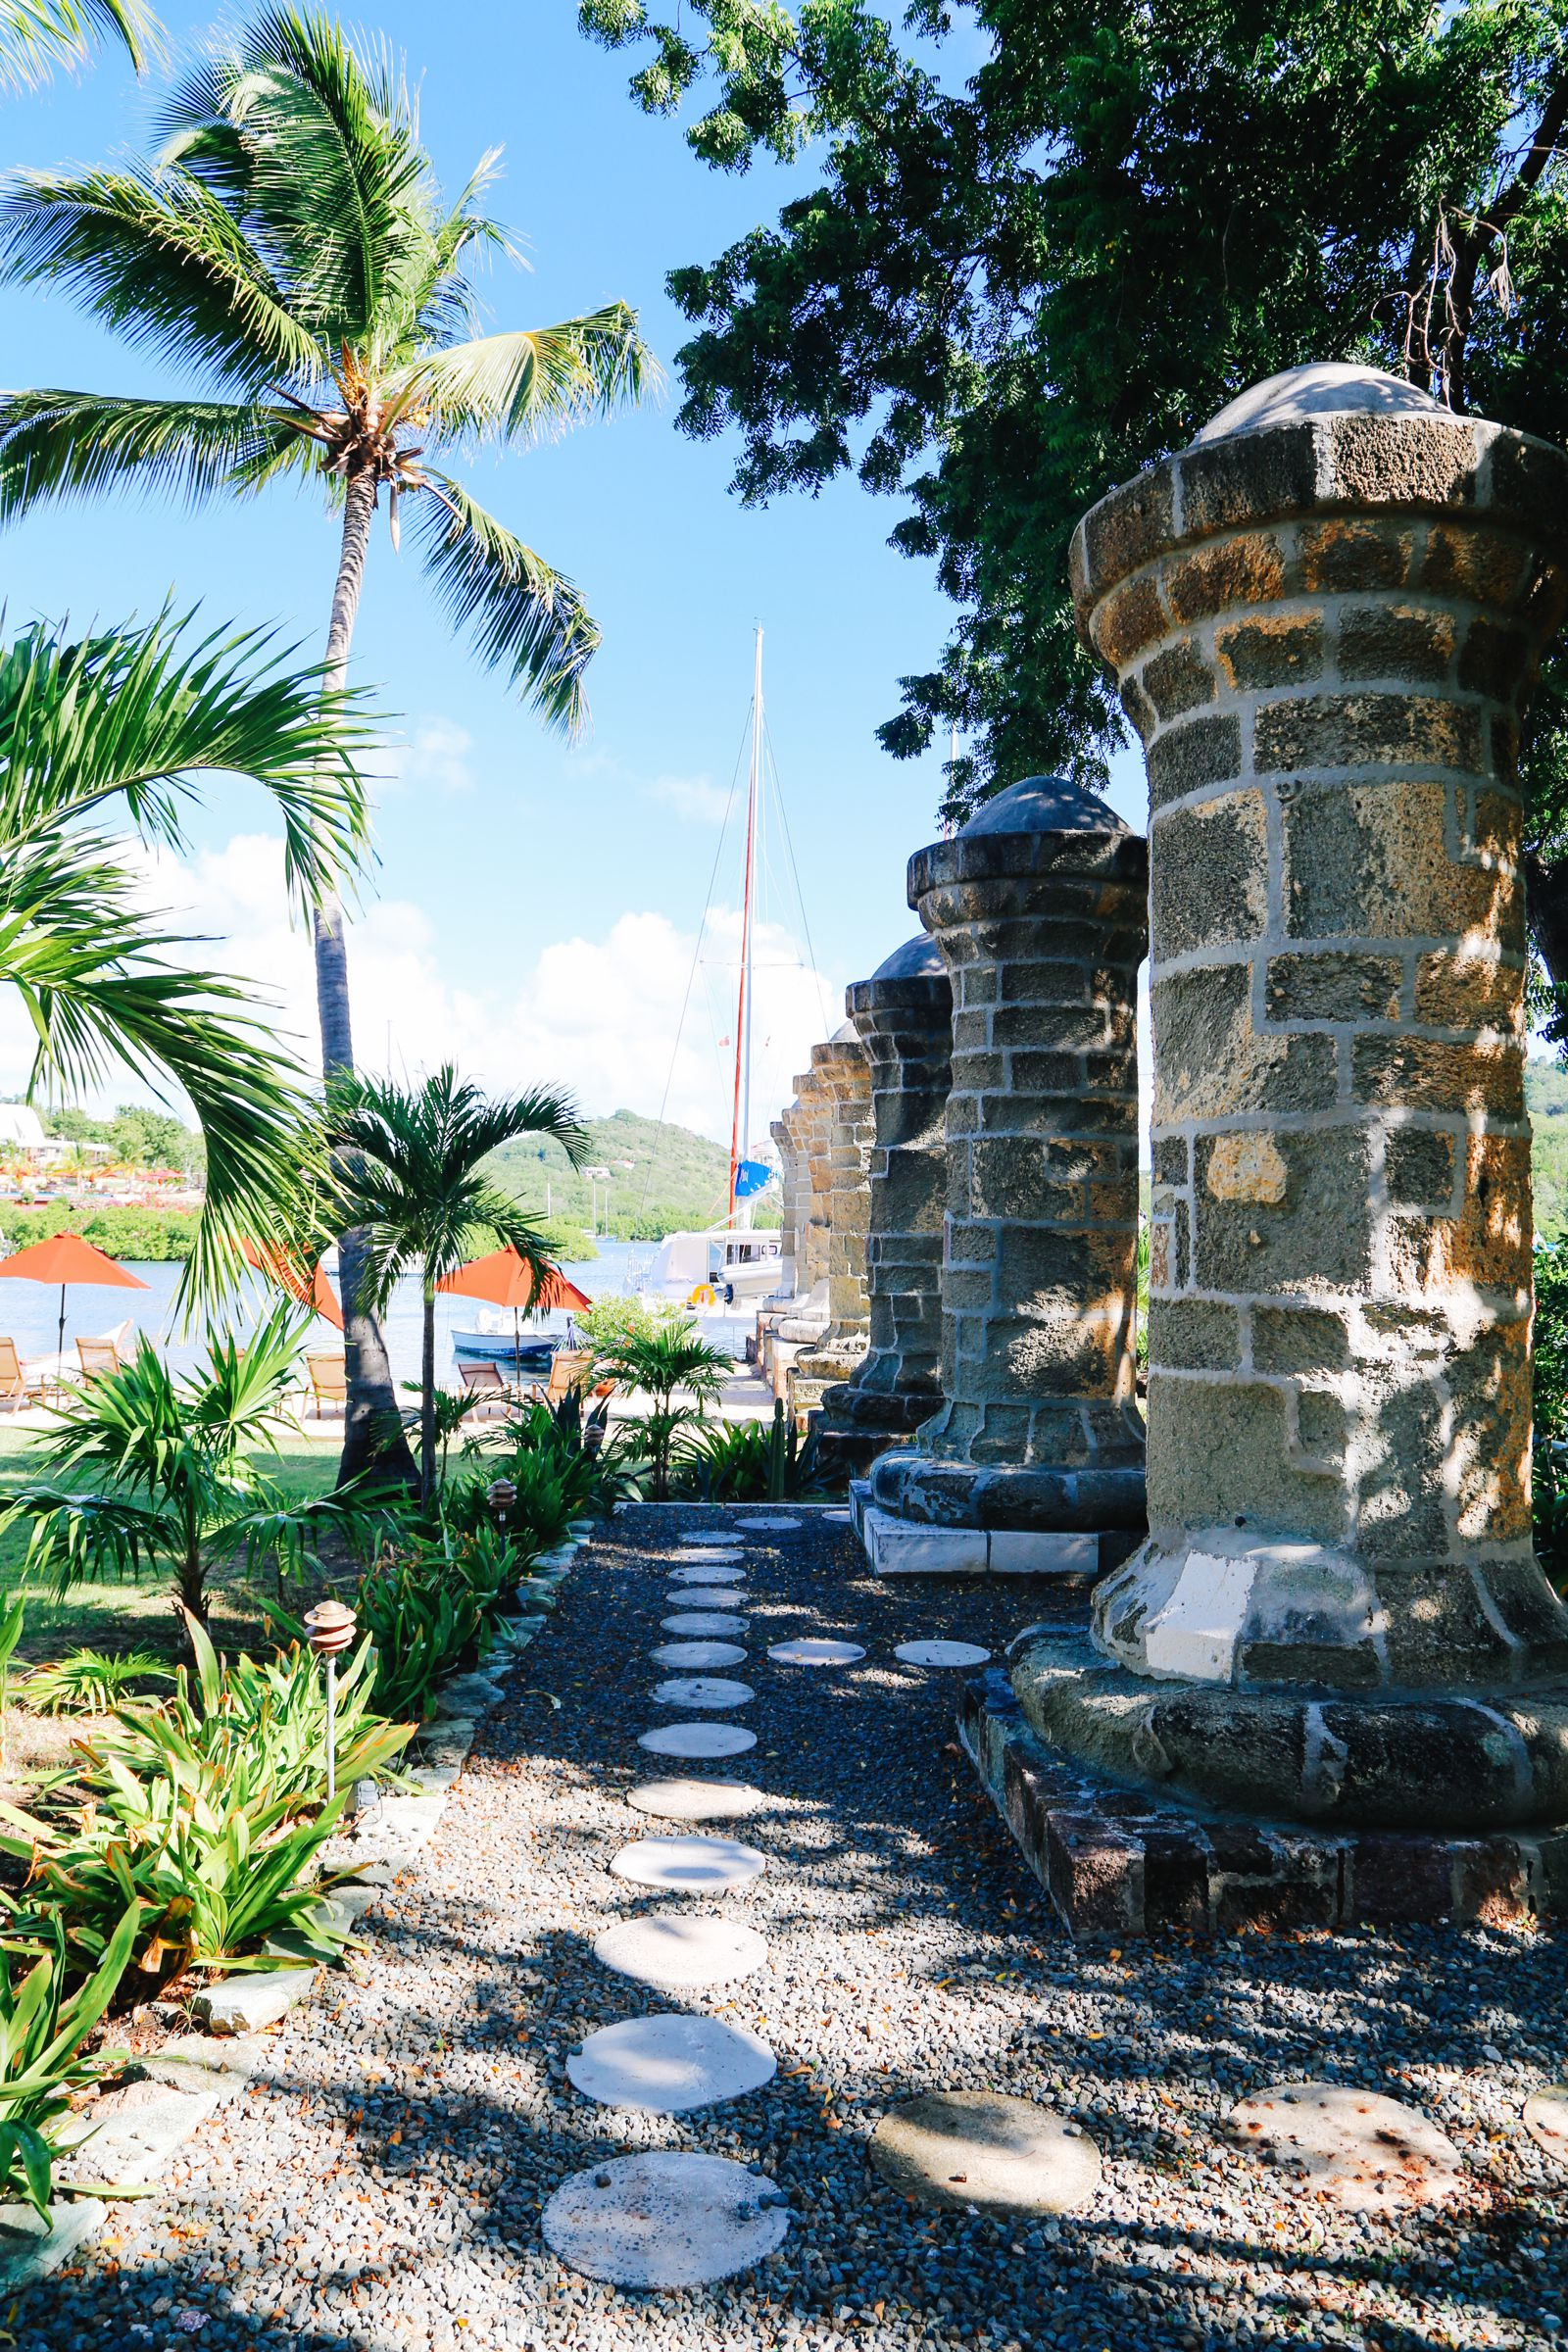 Exploring The Caribbean Island Of Antigua By Land - Part 1 (19)